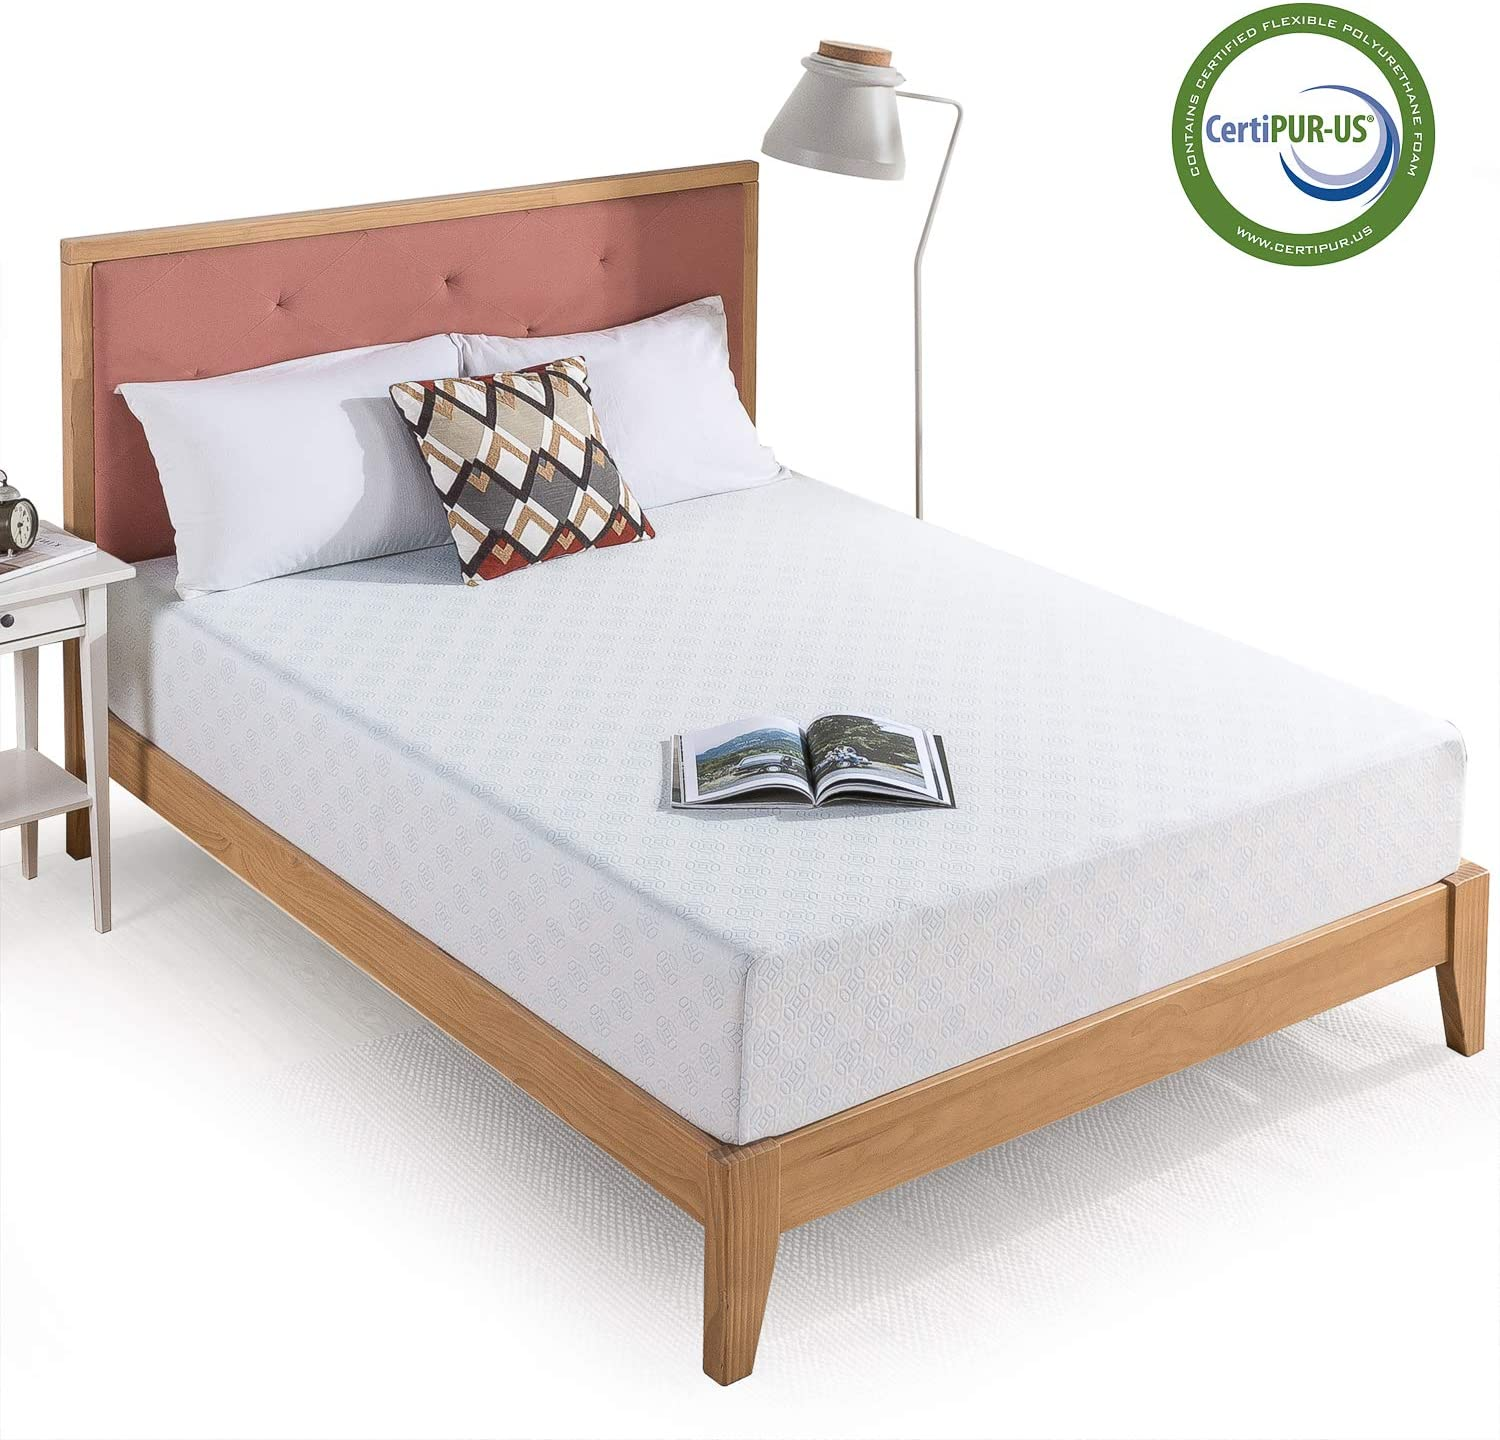 Zinus 10 Inch Gel-Infused Green Tea Memory Foam Mattress